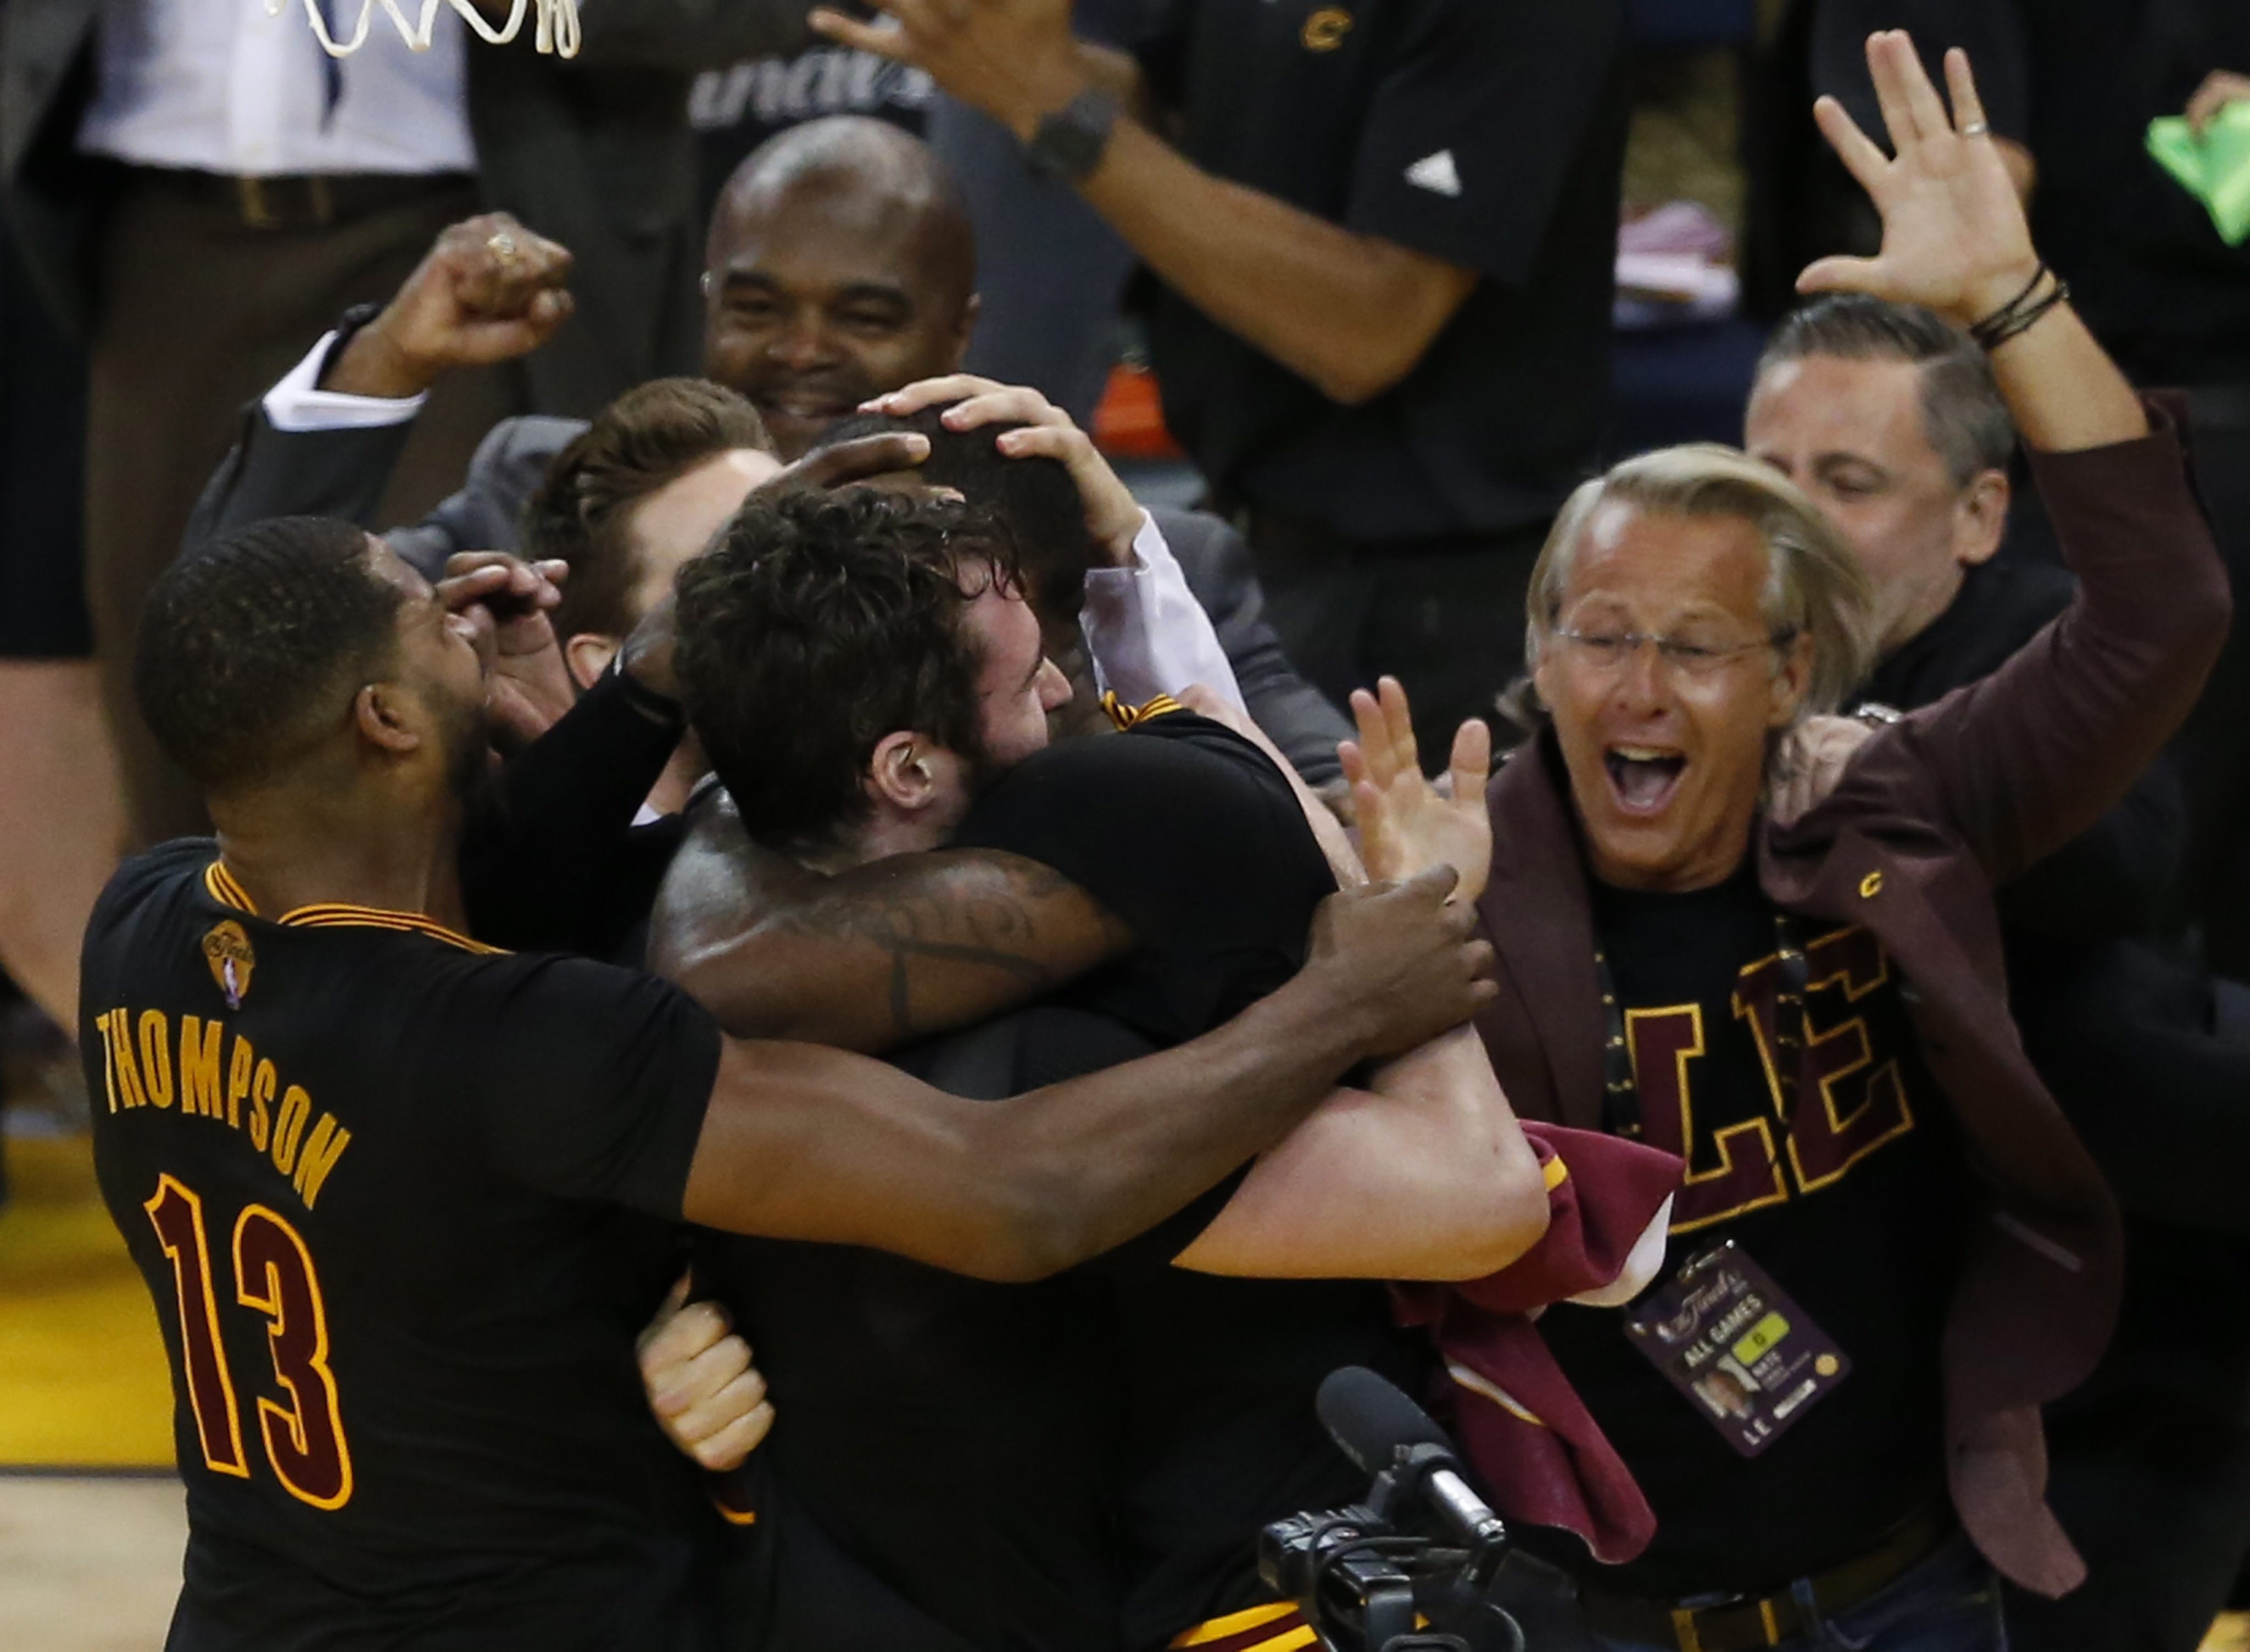 LWS175. Oakland (United States), 19/06/2016.- Cleveland Cavaliers players LeBron James (L), Tristan Thompson (C) and Kevin Love (R) celebrate after beating the Golden State Warriors in the NBA Finals game seven at Oracle Arena in Oakland, California, USA, 19 June 2016. (Baloncesto, Estados Unidos) EFE/EPA/JOHN G. MABANGLO CORBIS OUT